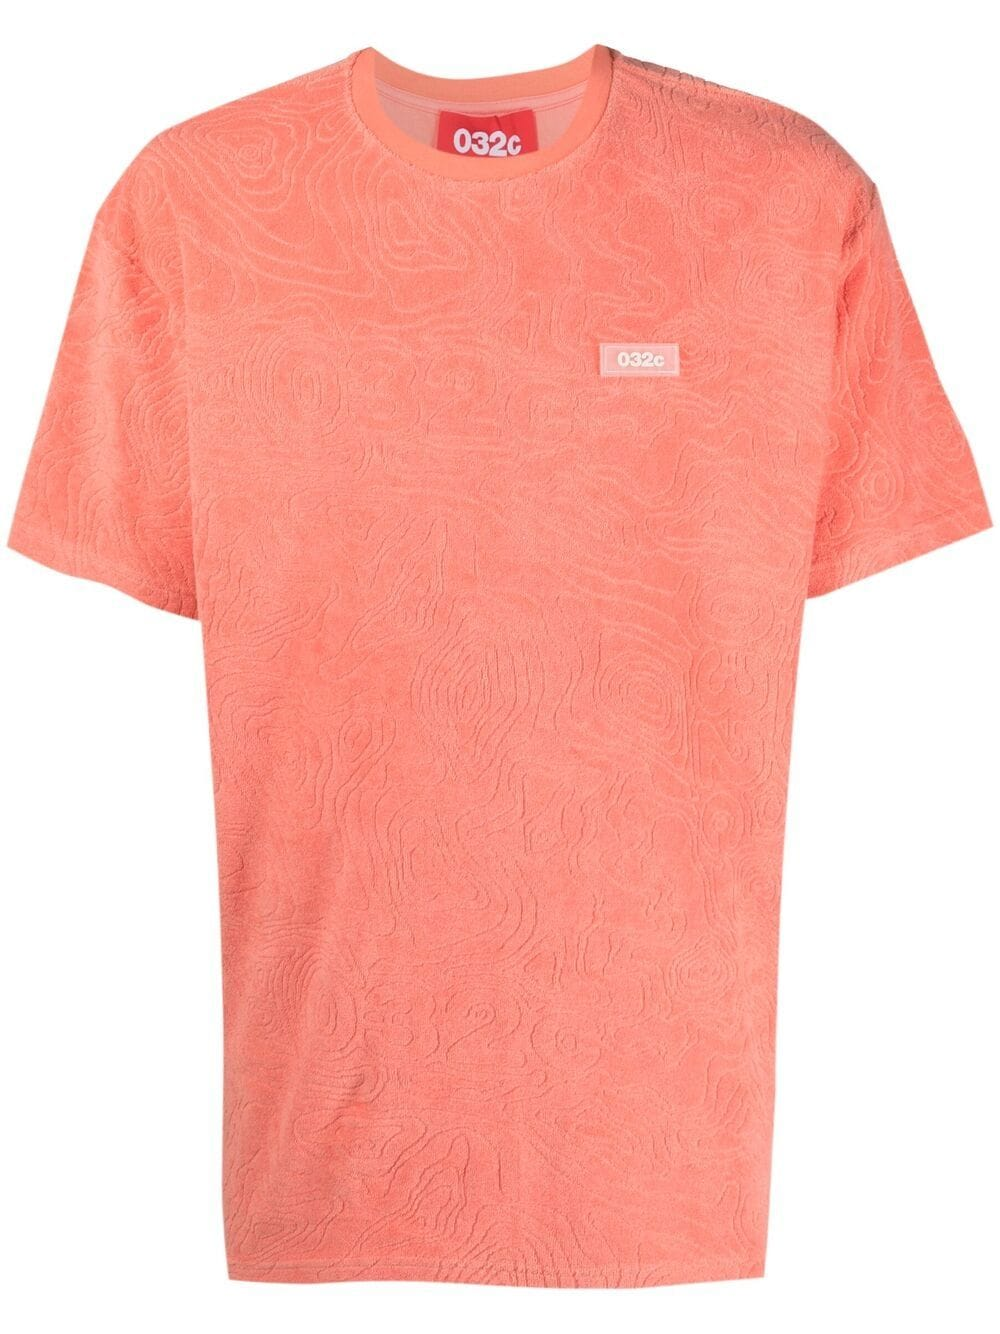 logo t-shirt man coral in cotton 032c | T-shirts | SS21-C-1011CORAL